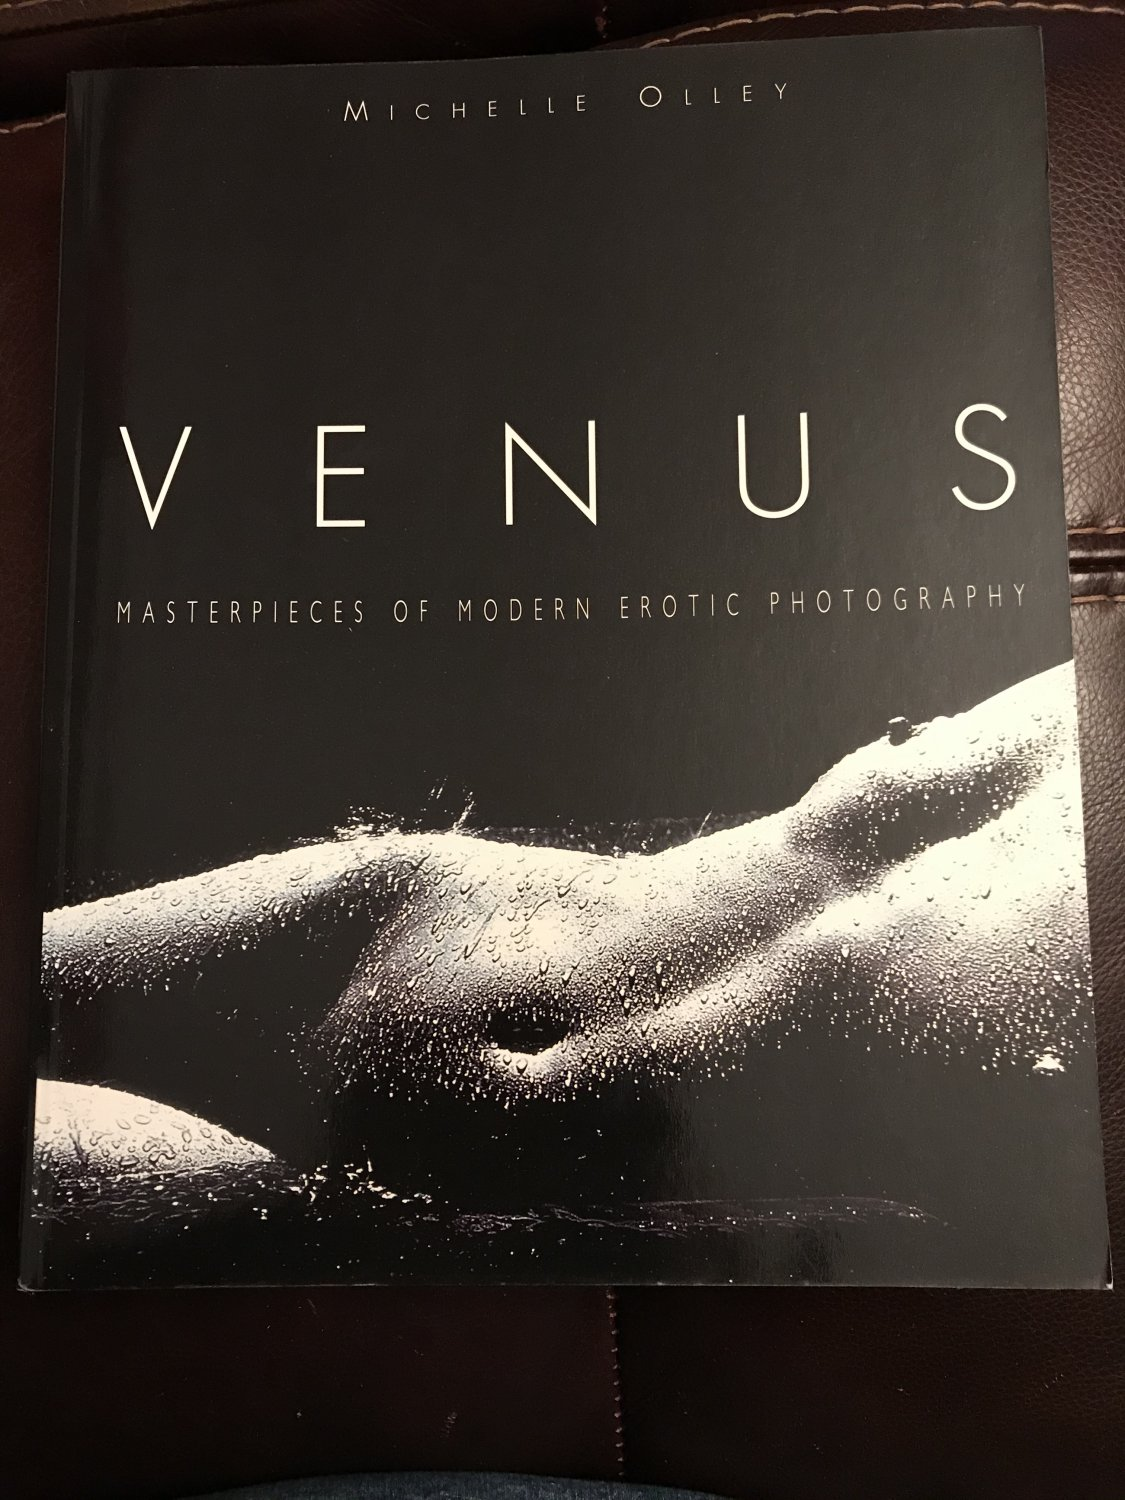 Venus: Masterpieces of Modern Erotic Photography by Michelle Olley